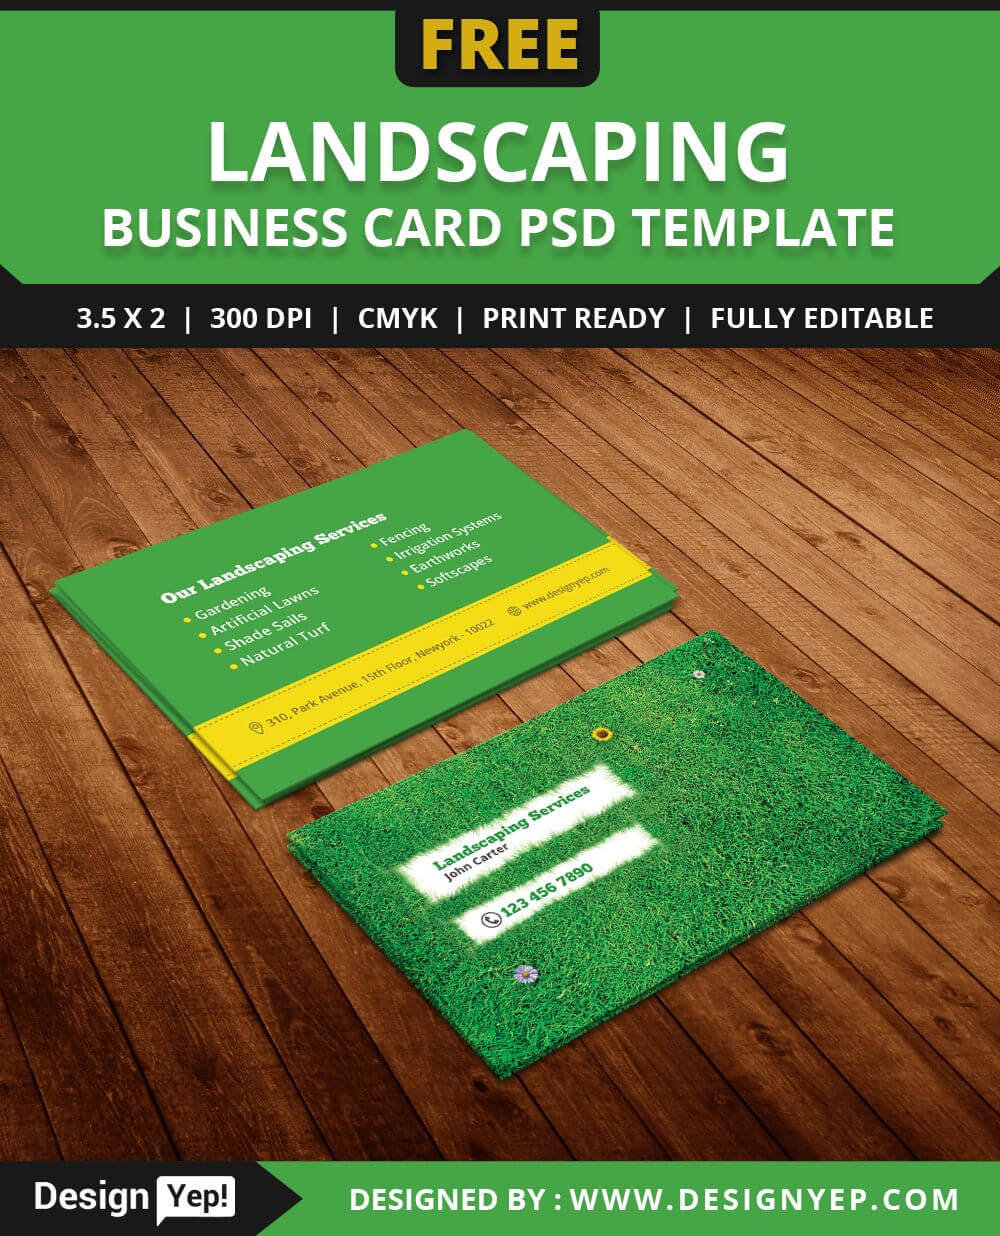 Free Landscaping Business Card Template Psd | Free Business Within Gardening Business Cards Templates